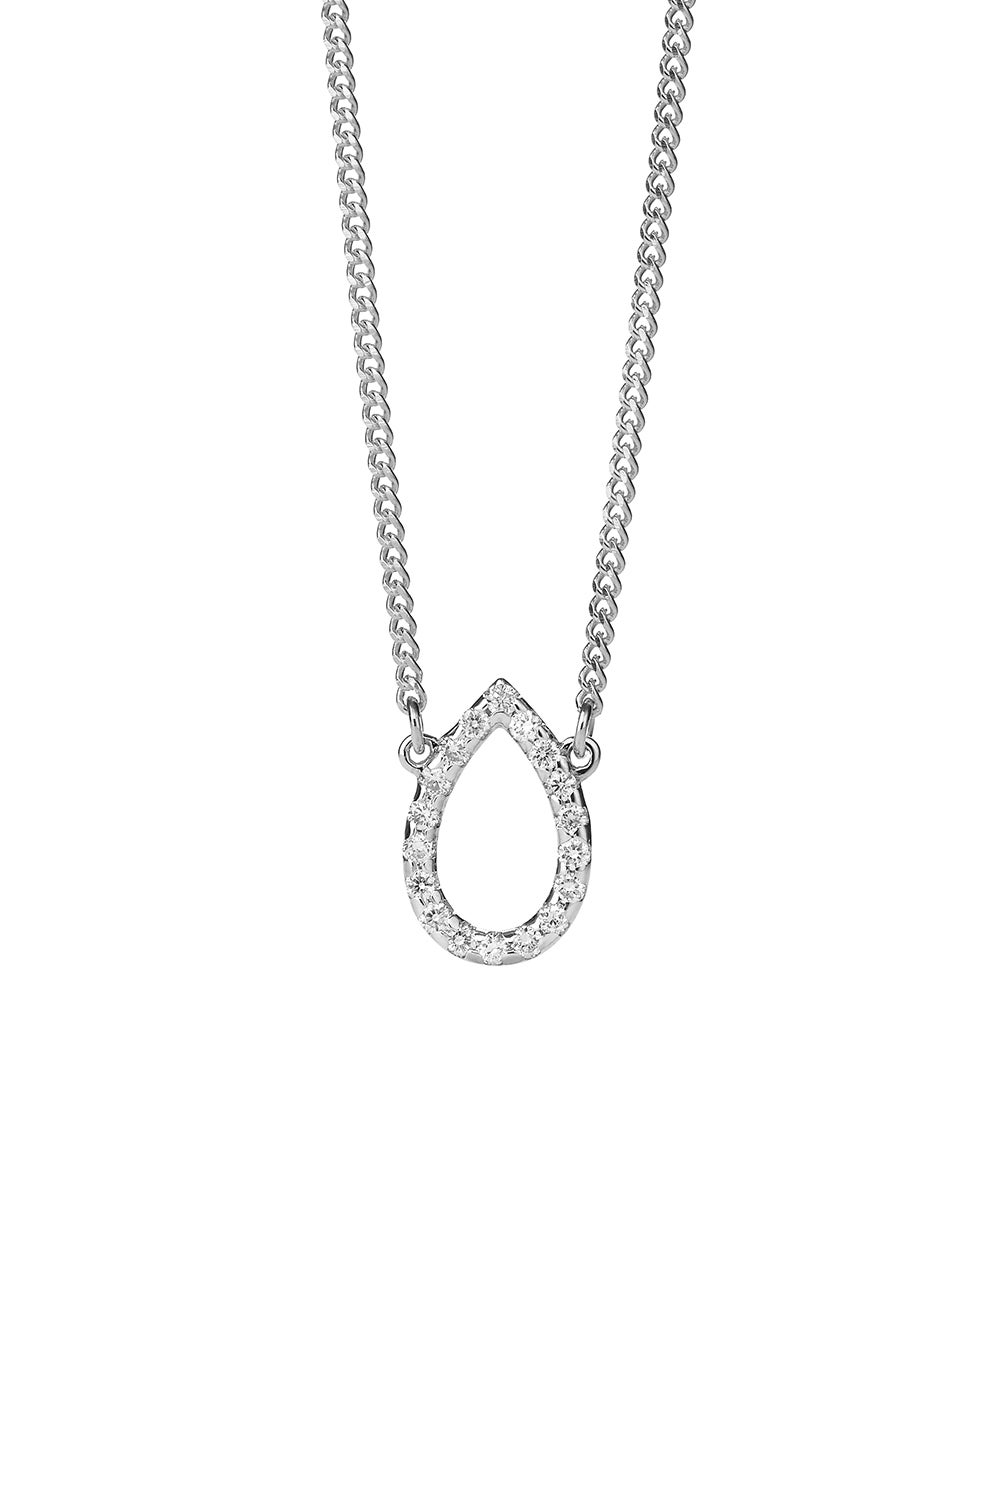 Capsule Diamond Necklace, 9ct White Gold, .12ct Diamond